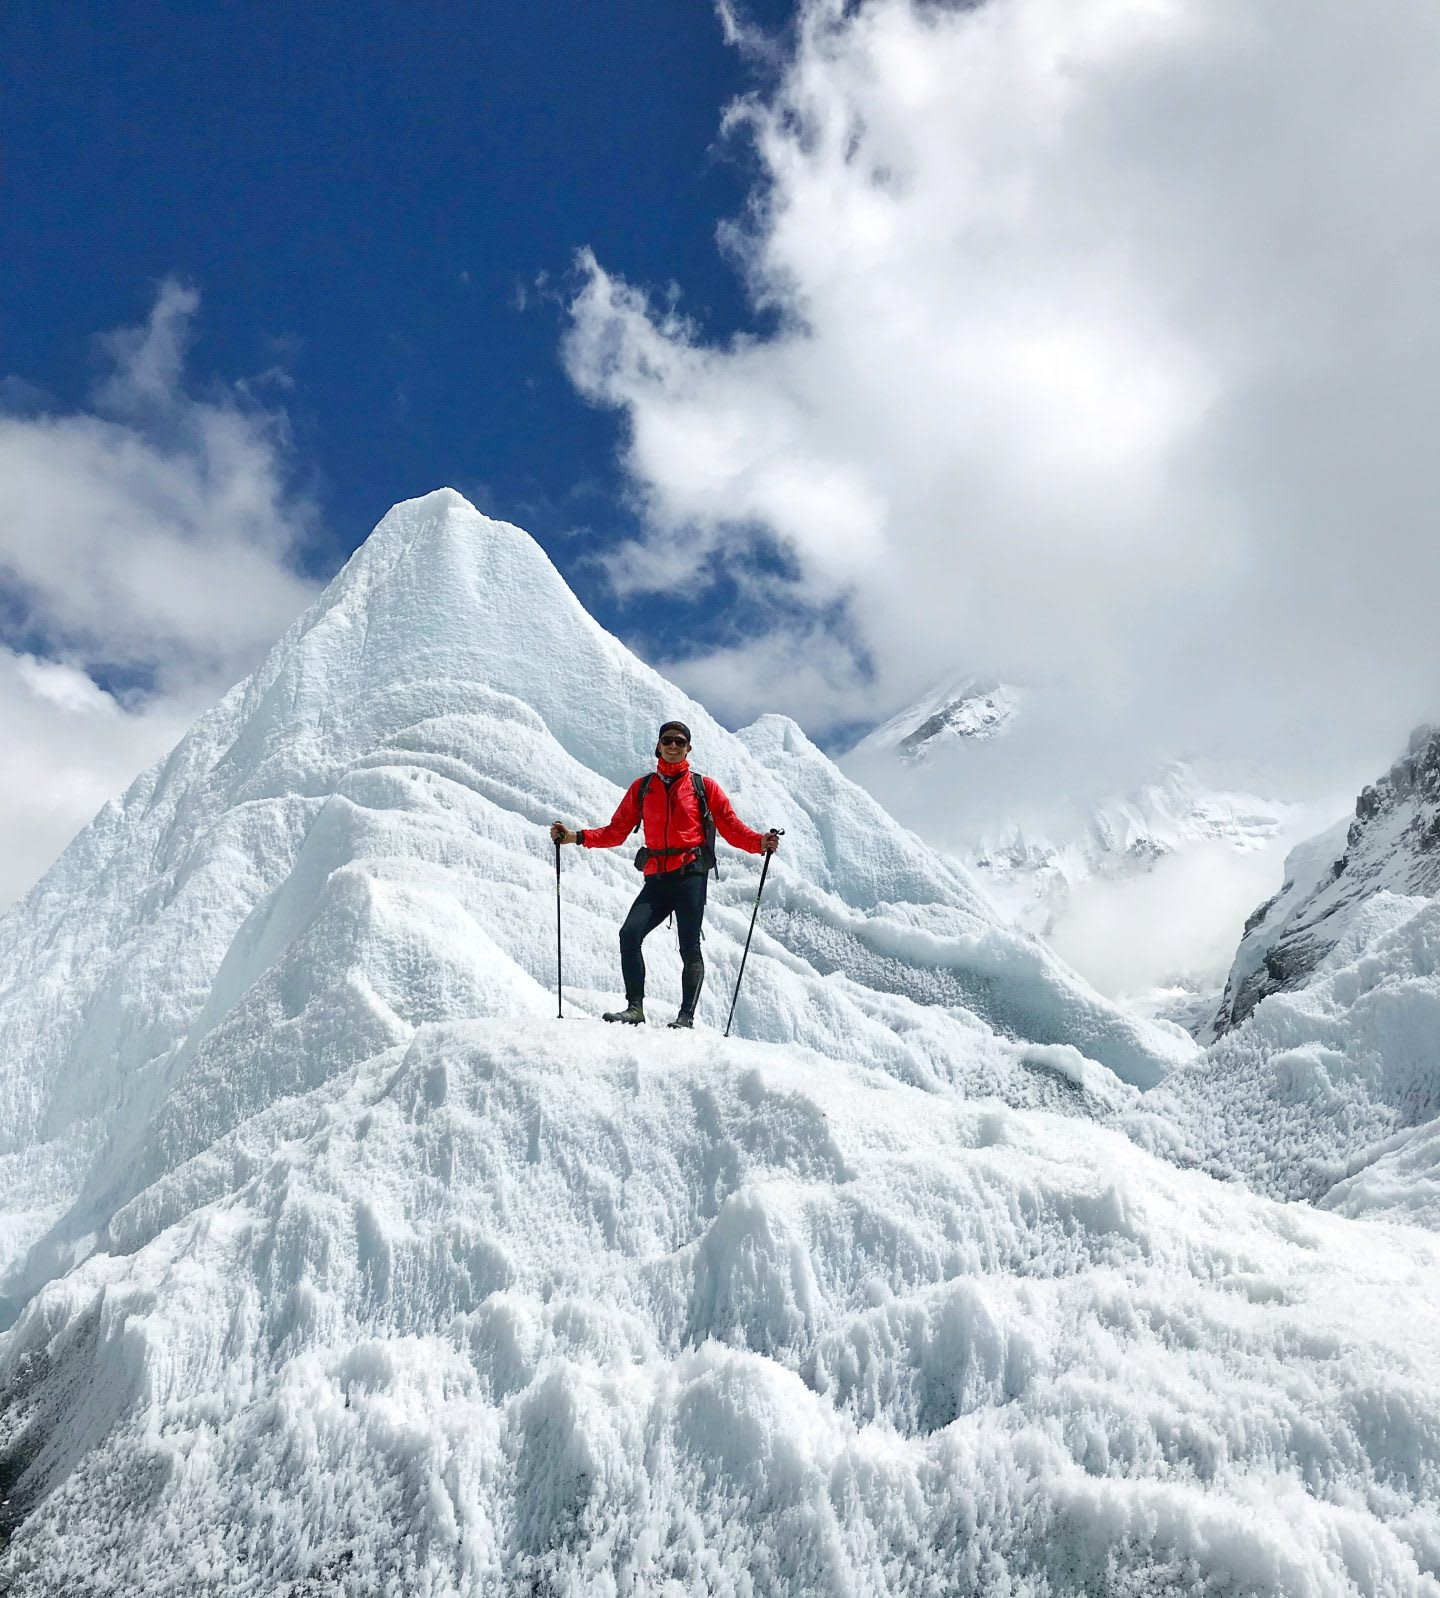 Marcel posing for a picture in the snow.   Climbing Everest